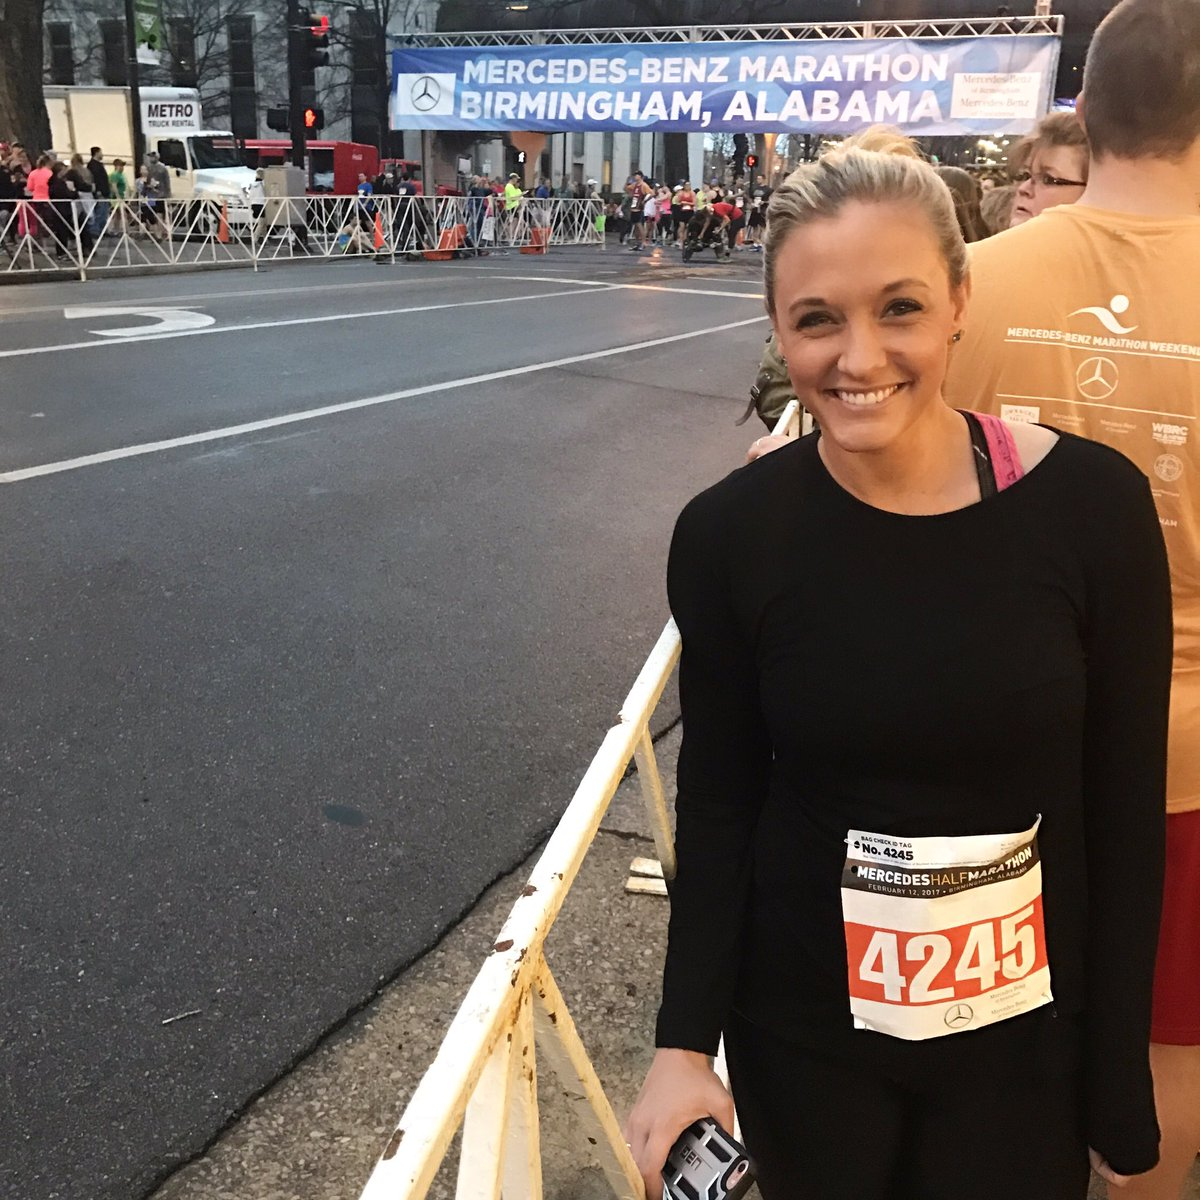 Brittany Decker On Twitter Ready To Run Mercedes Half Marathon Well Sort Of Readyornot Run Mercedes Wvtm13 200+ people named brittany decker living in the us. brittany decker on twitter ready to